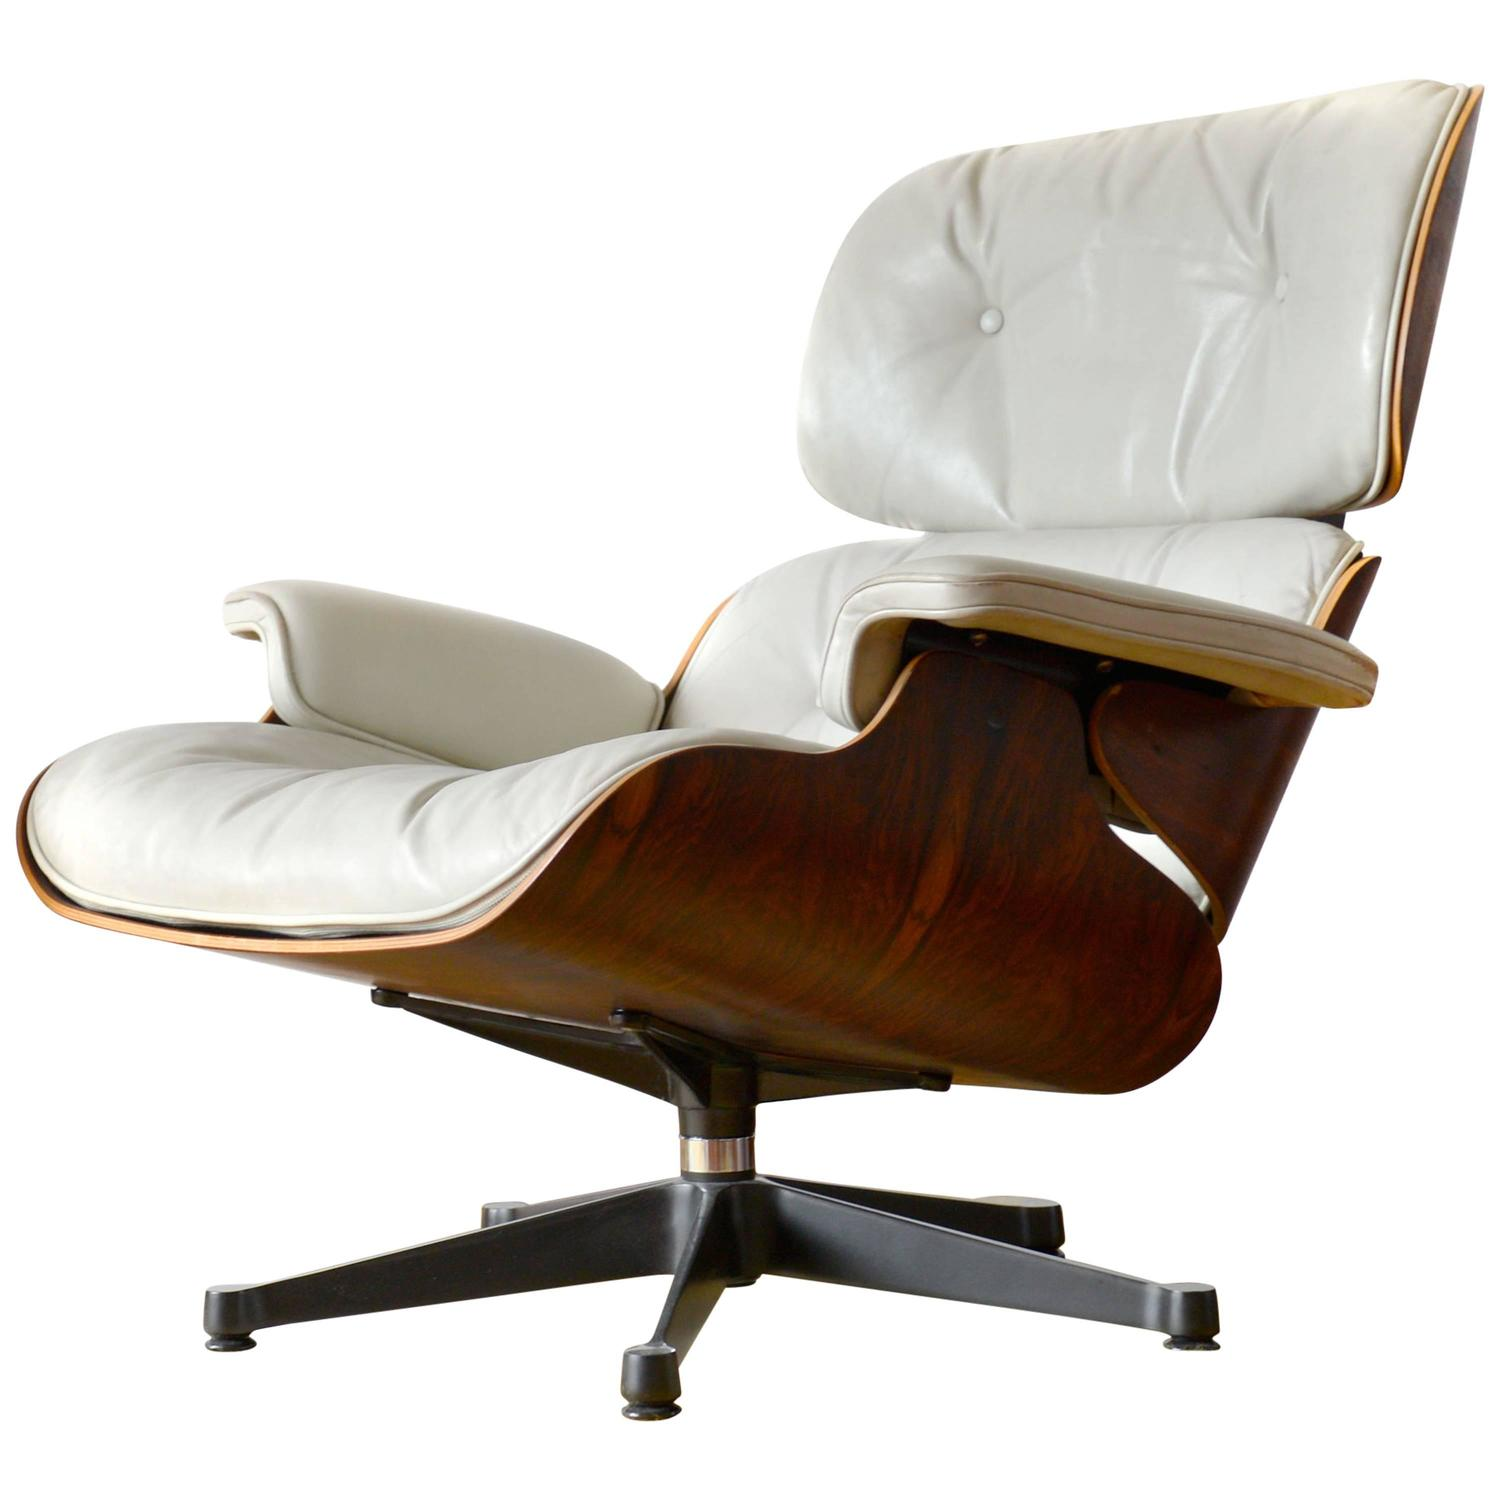 Awesome White Leather Lounge Chair Charles Eames Pdpeps Interior Chair Design Pdpepsorg